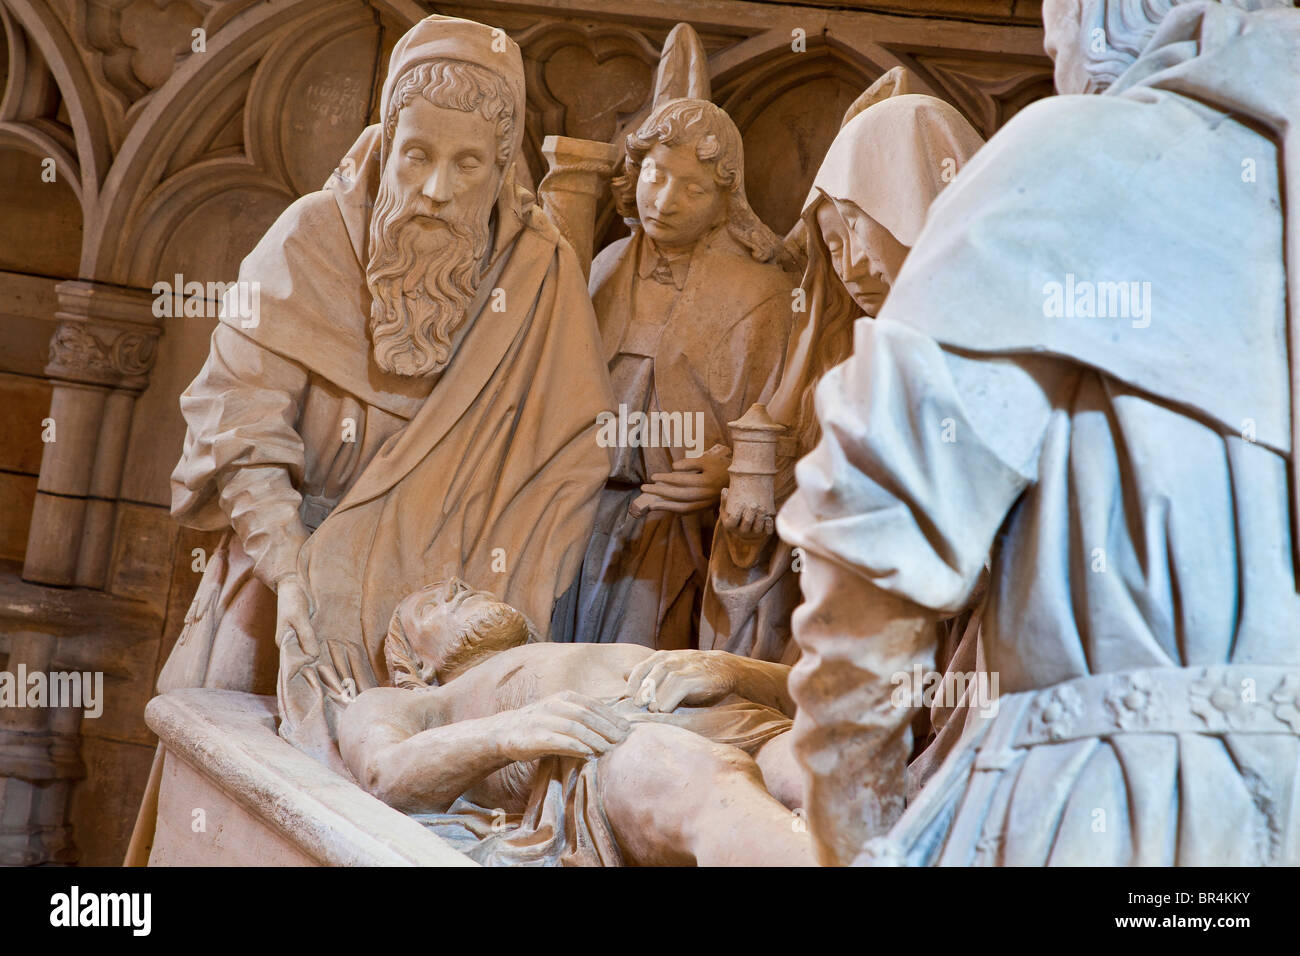 France, Marne, L'Epine, Notre Dame de l'Epine Basilica listed as World Heritage by UNESCO, the Entombment - Stock Image